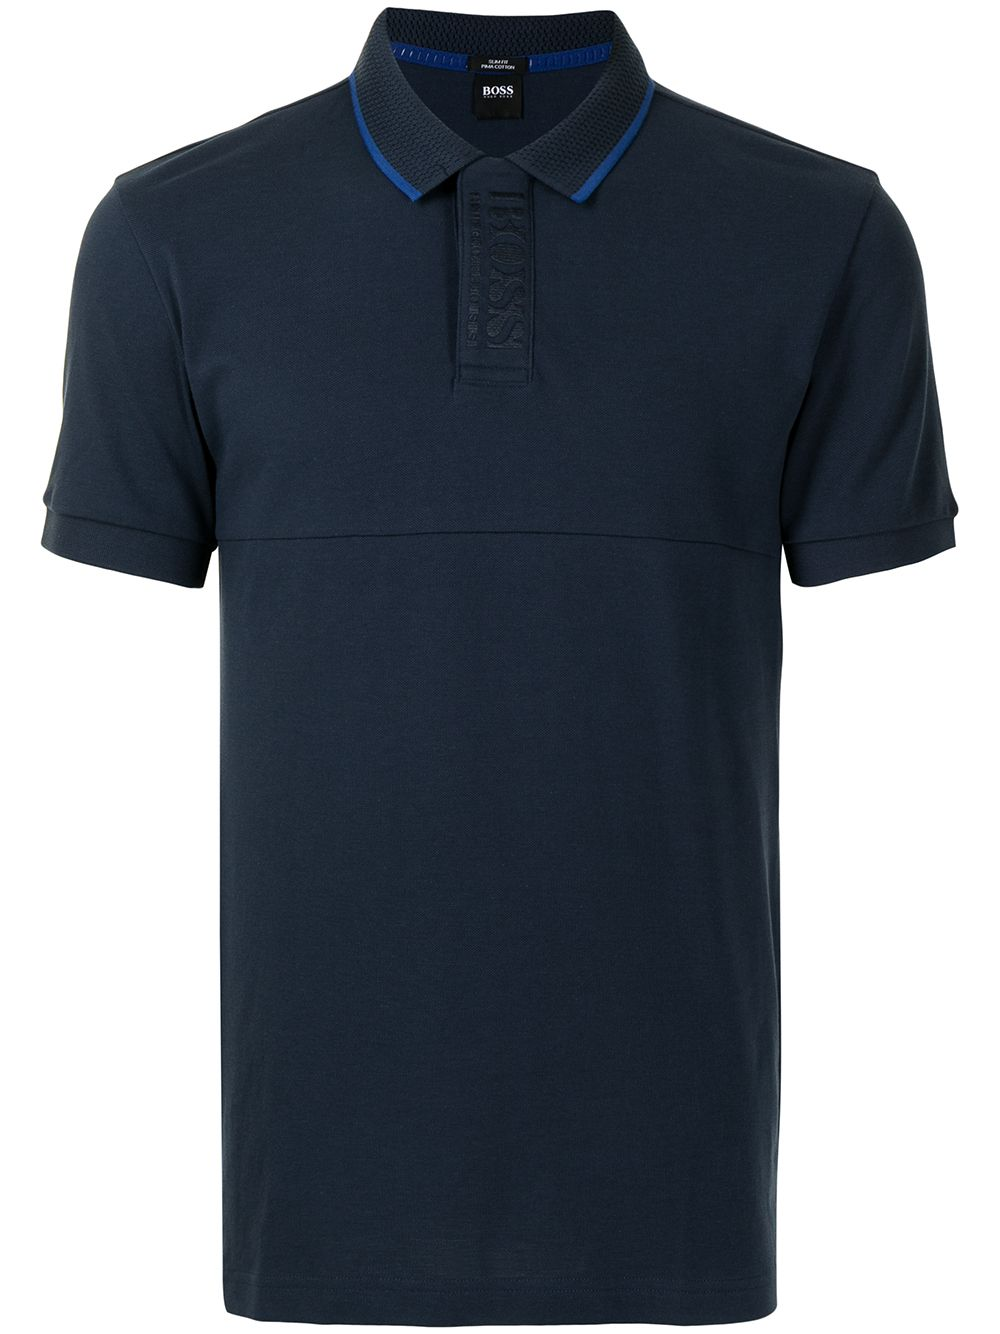 BOSS Slim Fit Polo Shirt Navy